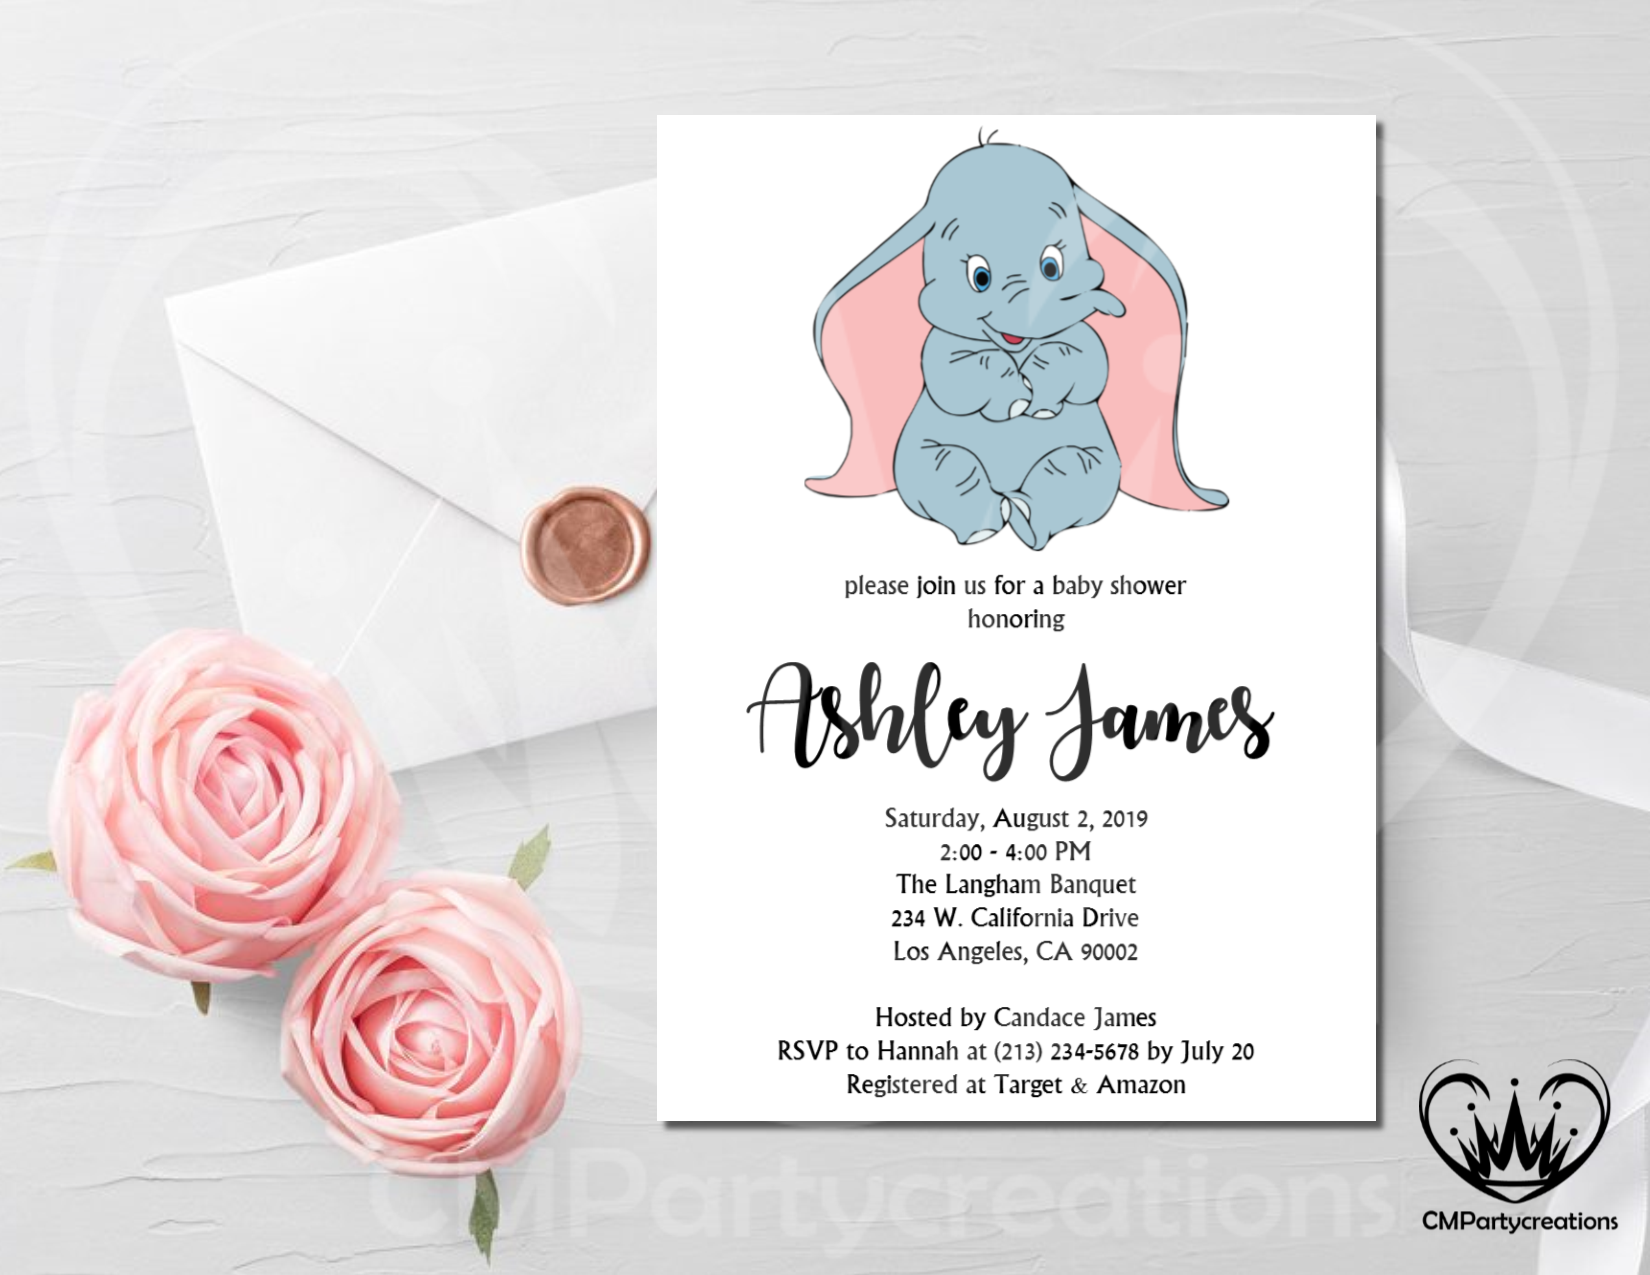 photograph about Baby Shower Invitation Printable named Dumbo Child Shower Invitation Printable